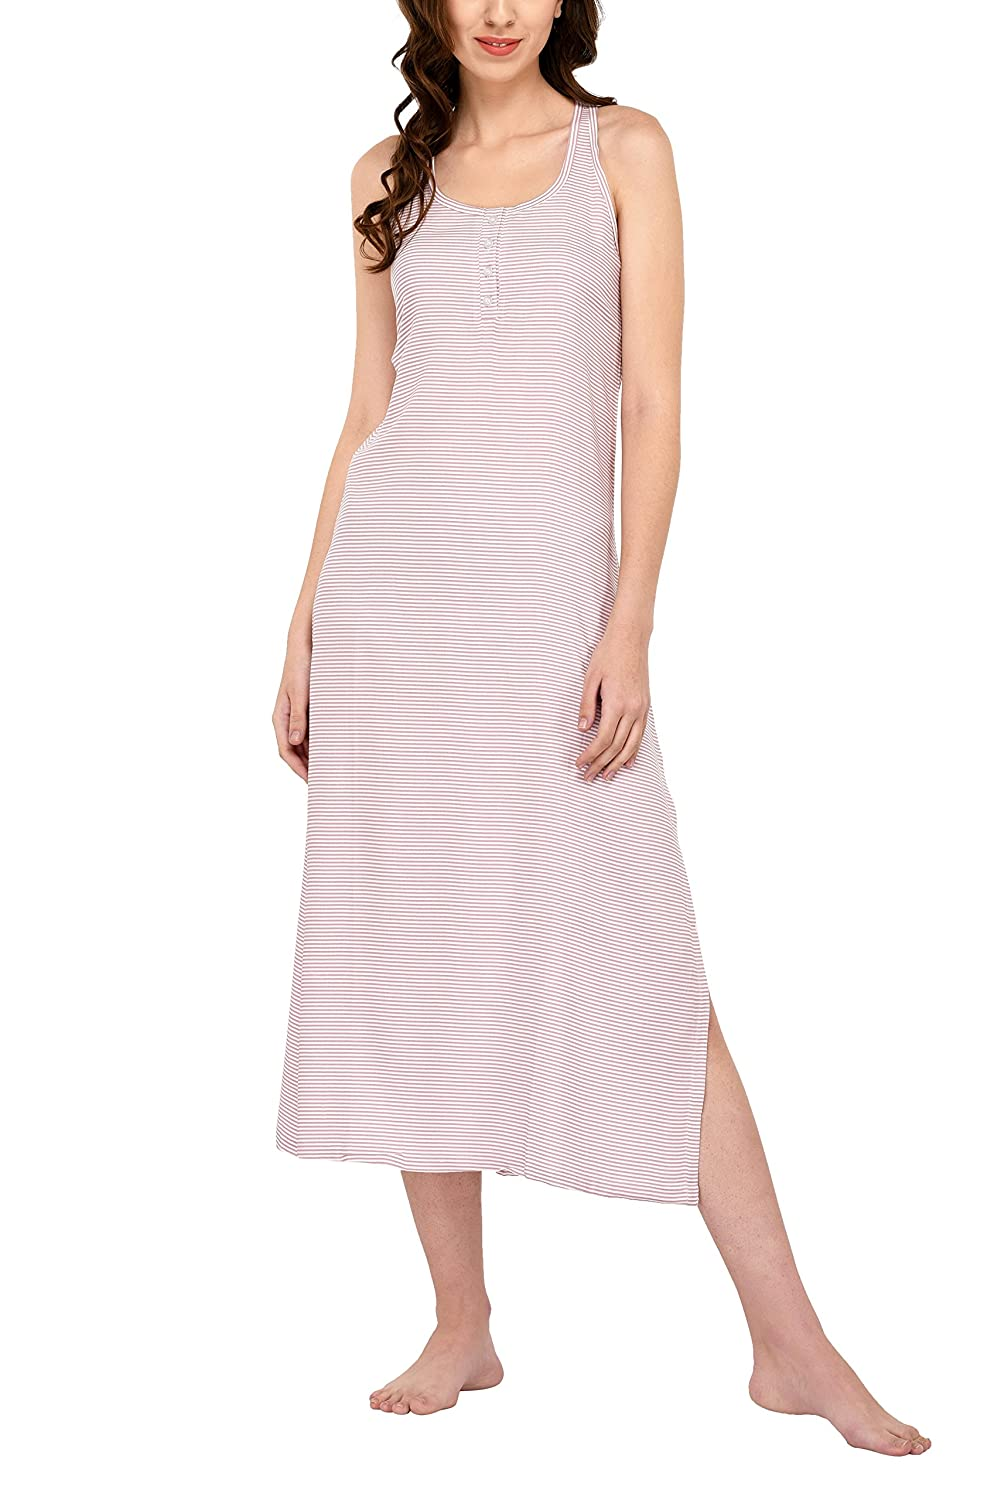 Pink Horizontal Stripe Vie De Rêve New York Nightgowns for Women Maxi Dresses for Women